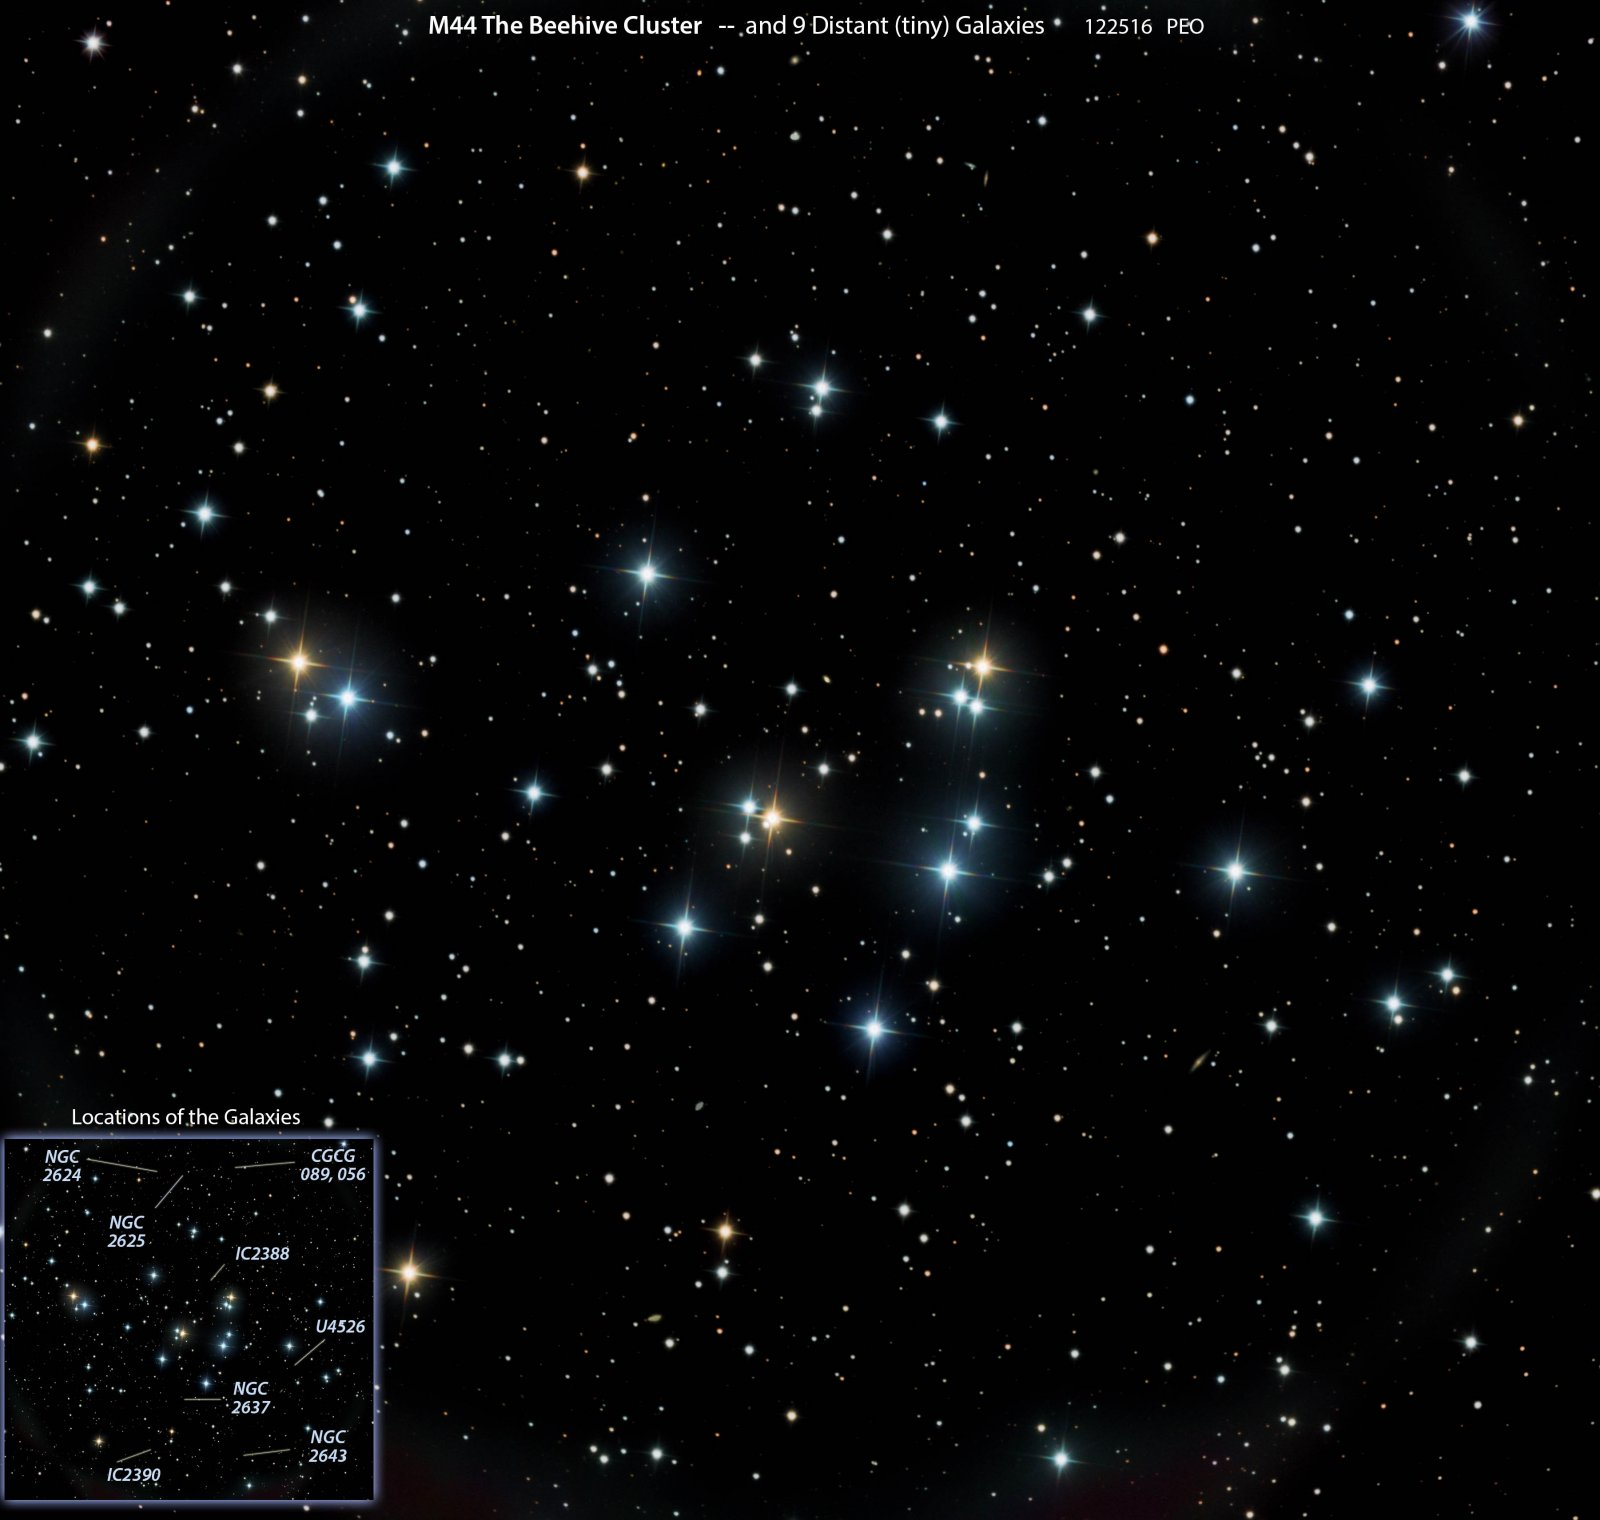 M44, the Beehive Cluster, with Galaxies